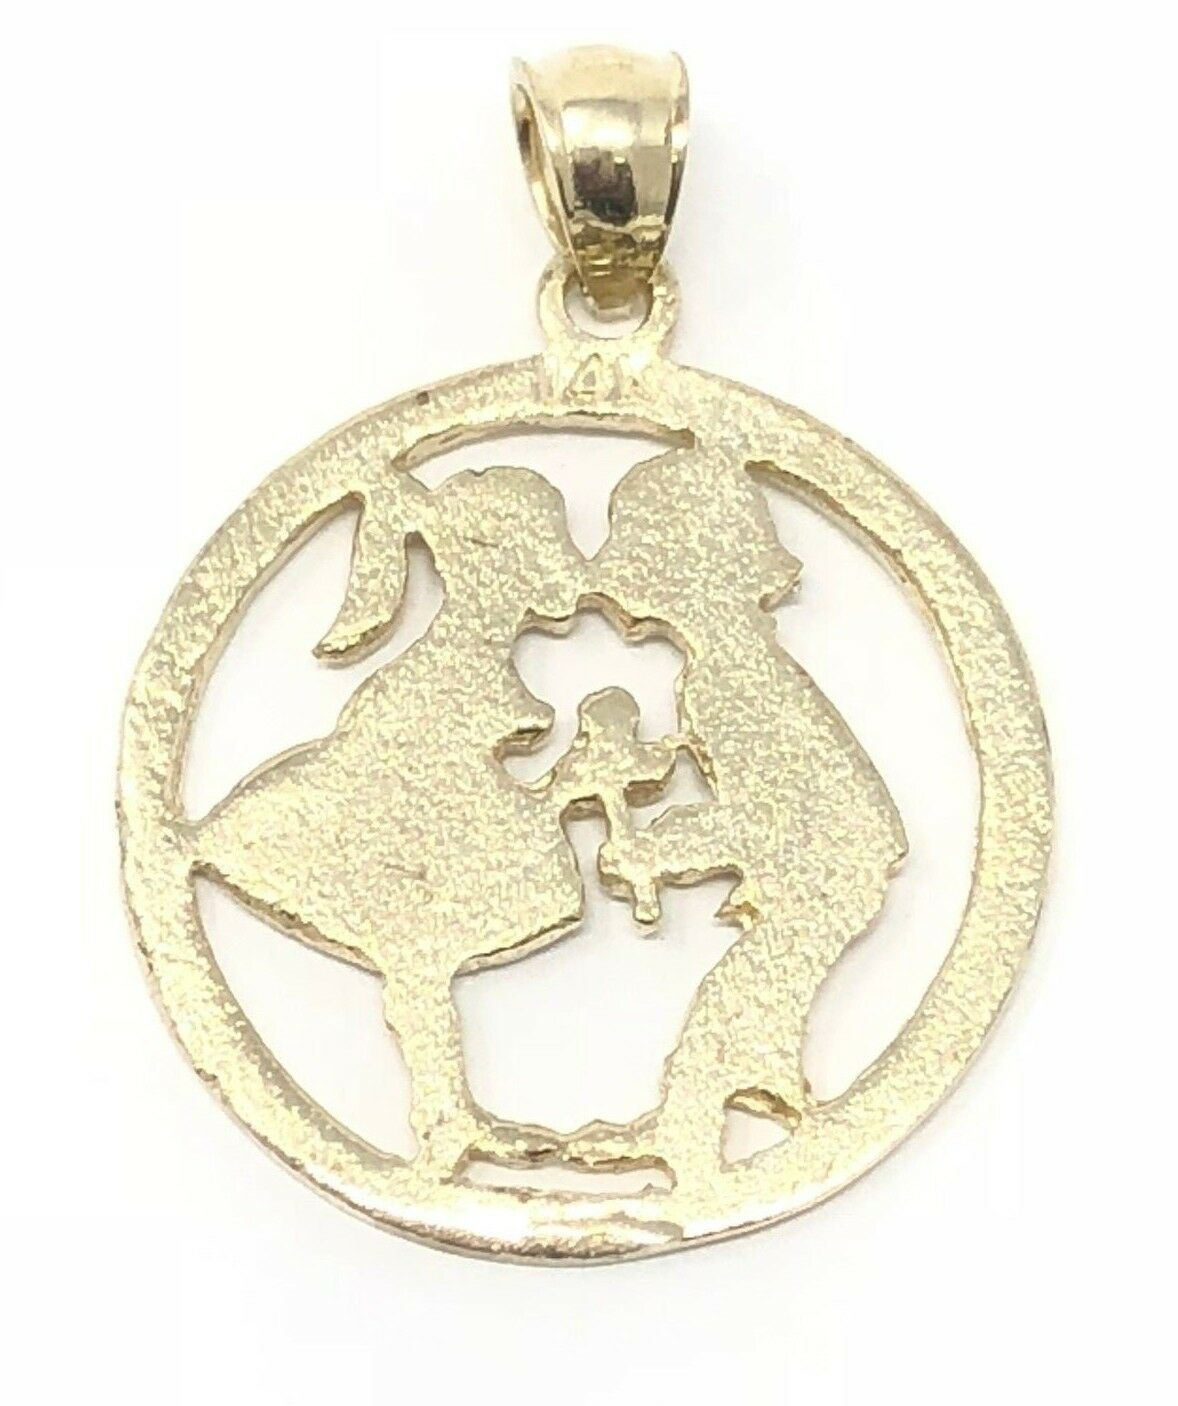 14K Yellow Gold Charm Pendant Themed 17.8 mm 14.2 Kissing Boy And Girl